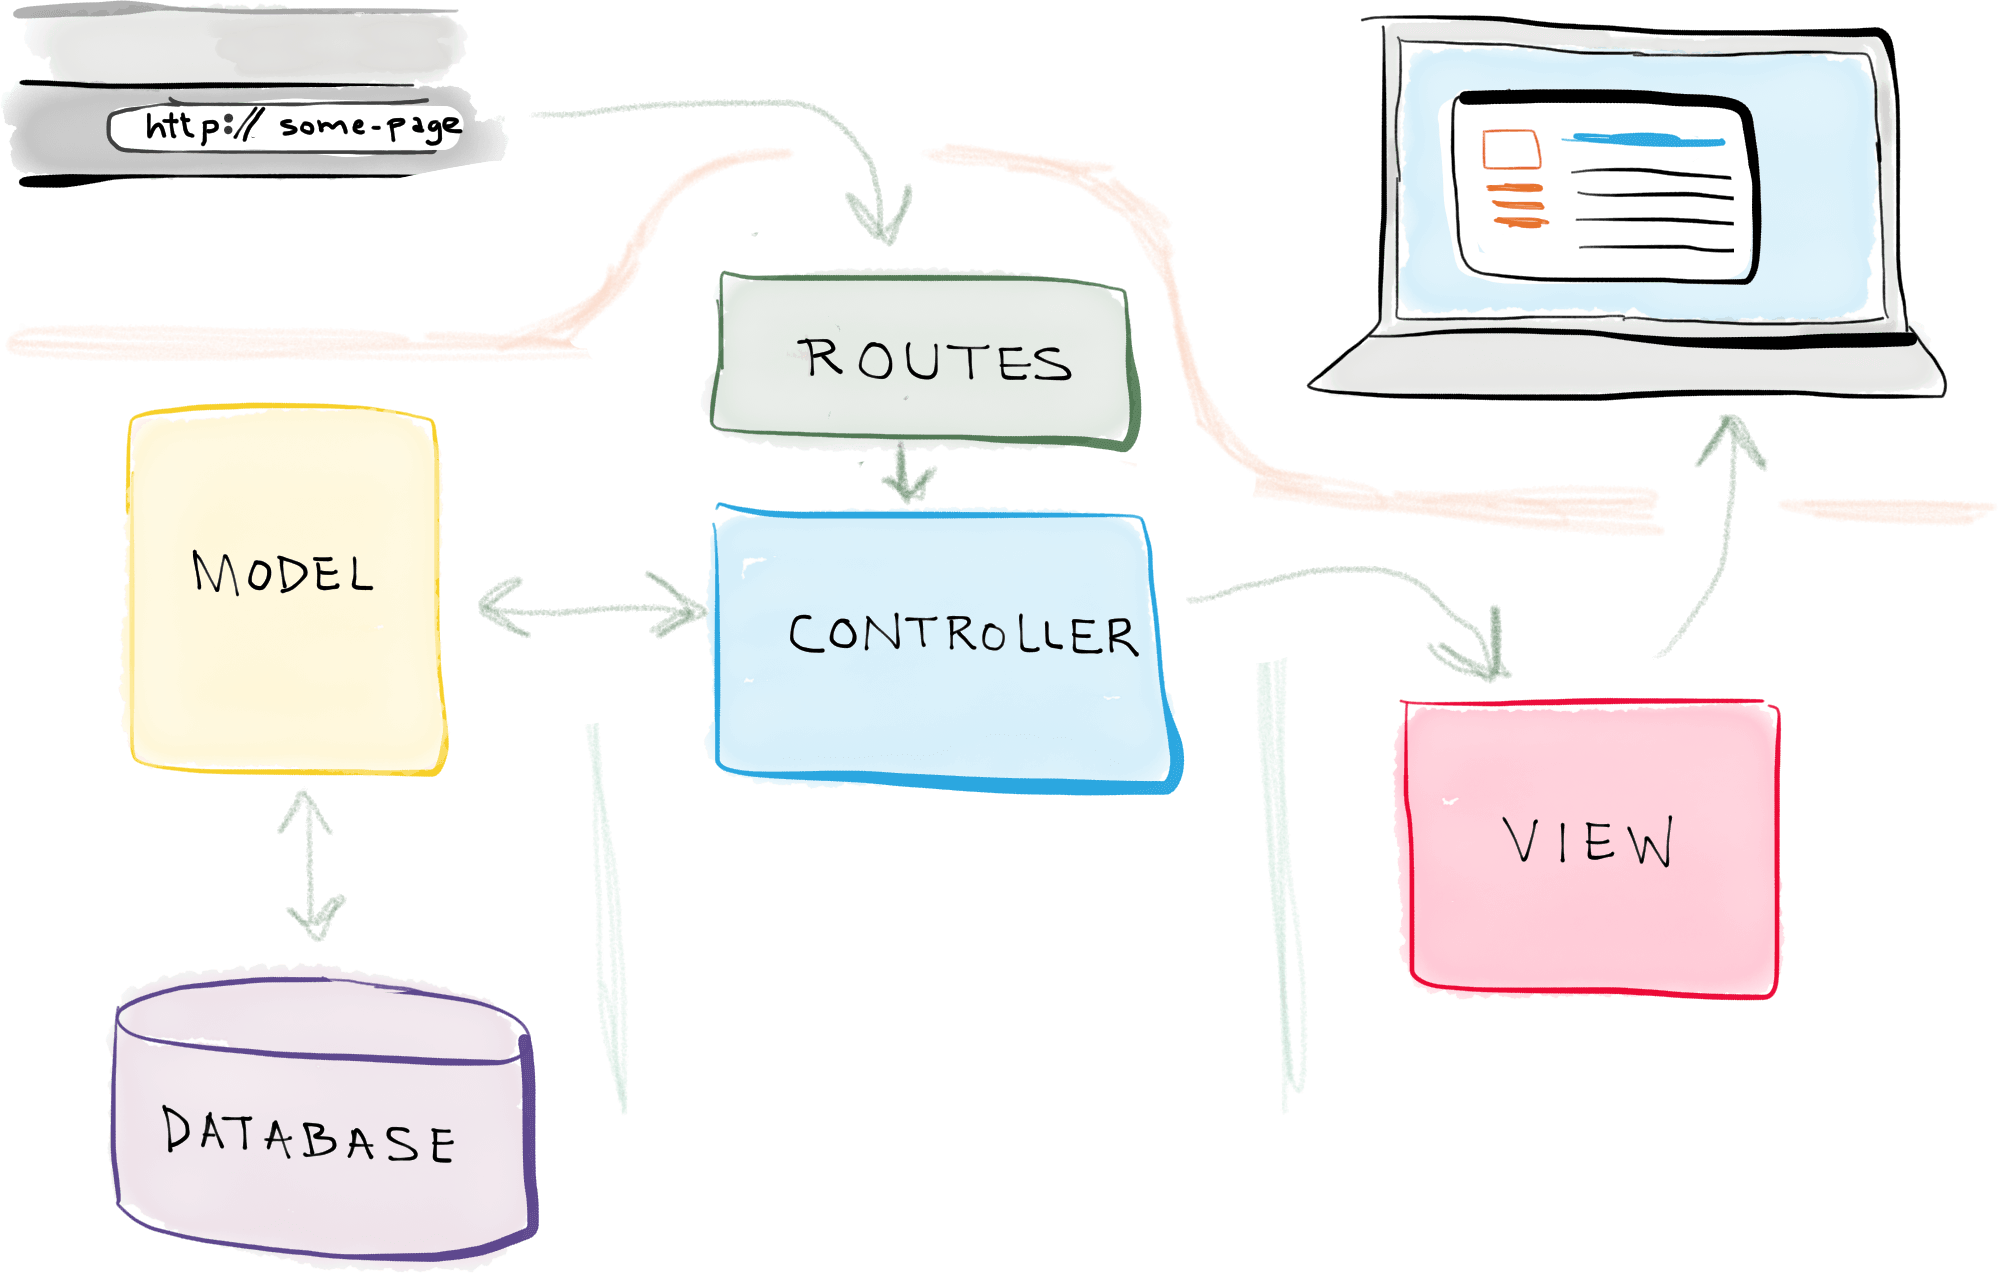 Laravel app model view controller architecture diagram